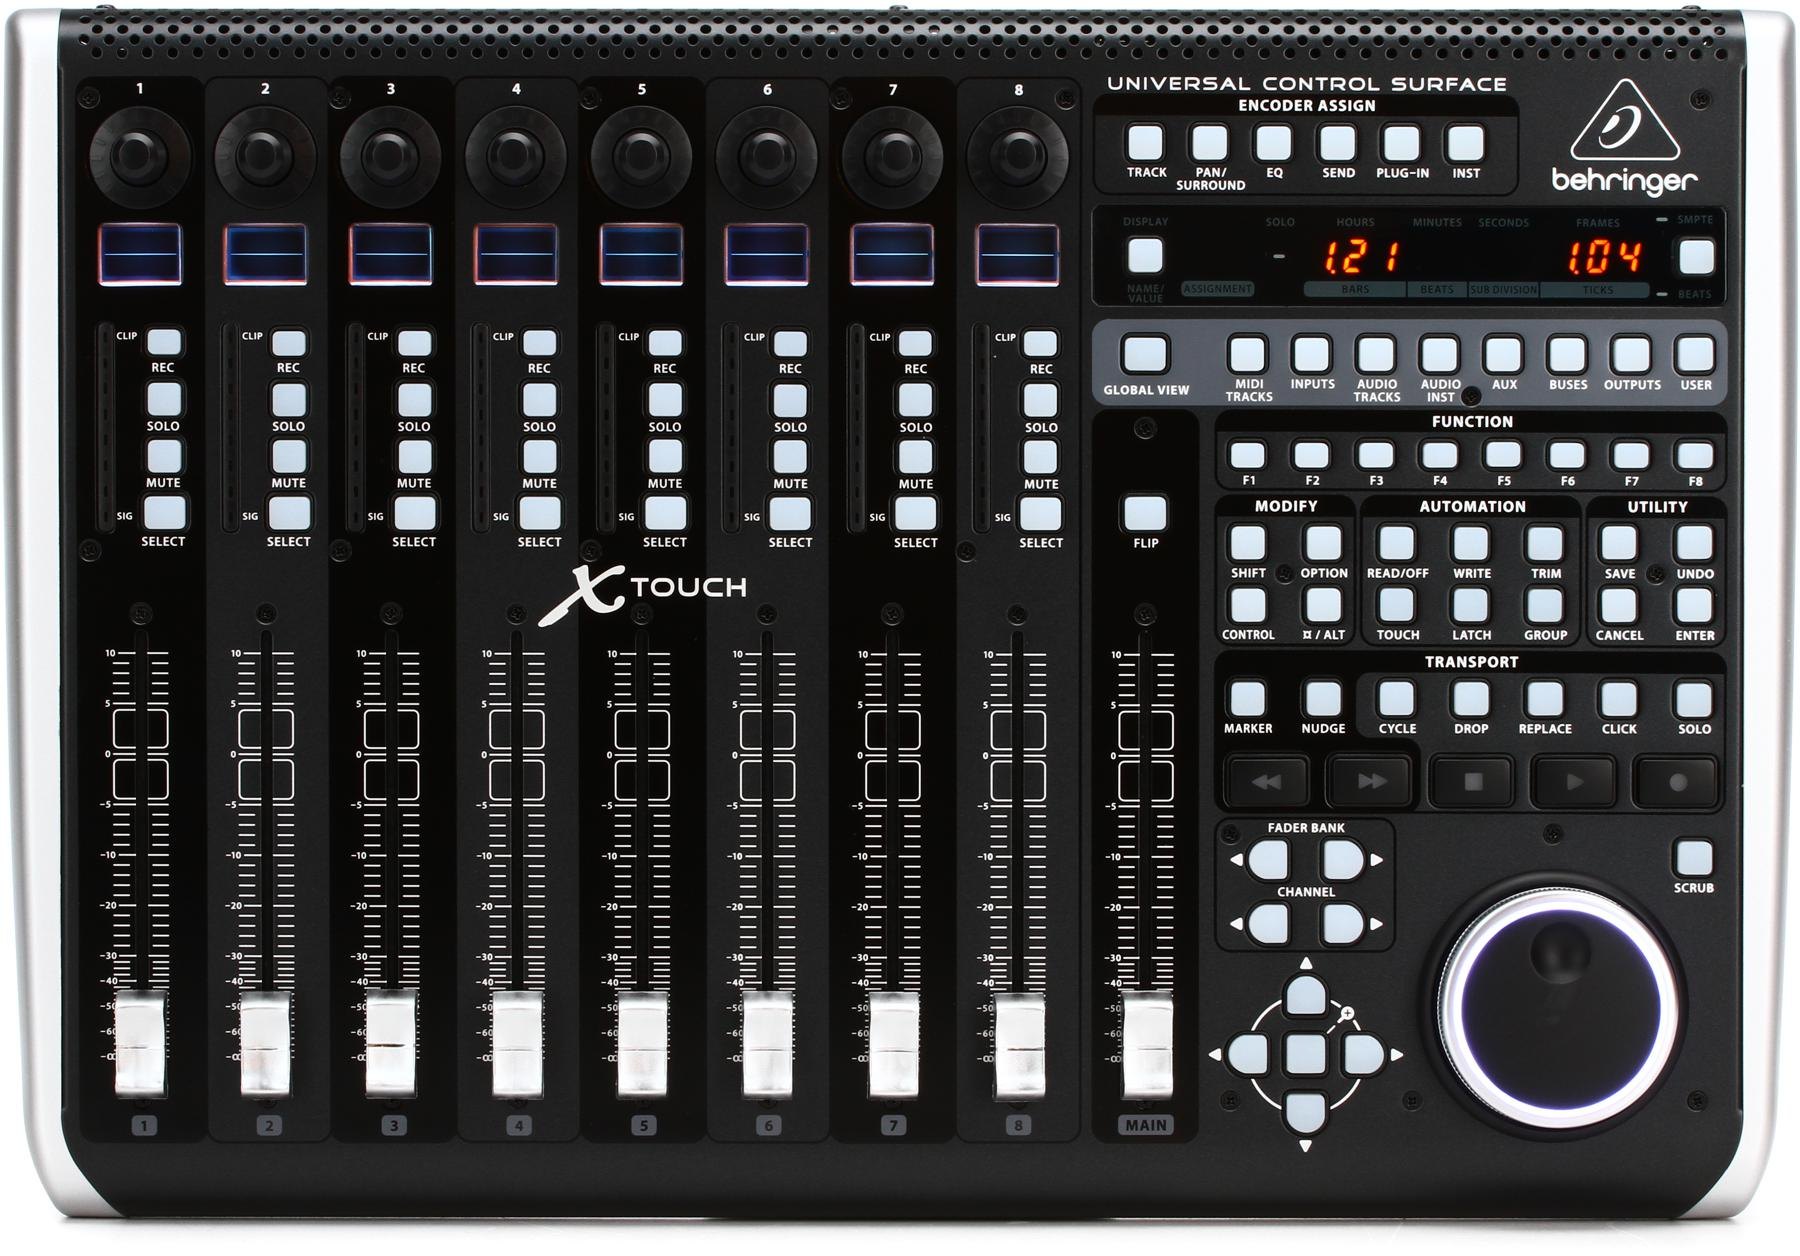 6. Behringer X-Touch Universal Control Surface